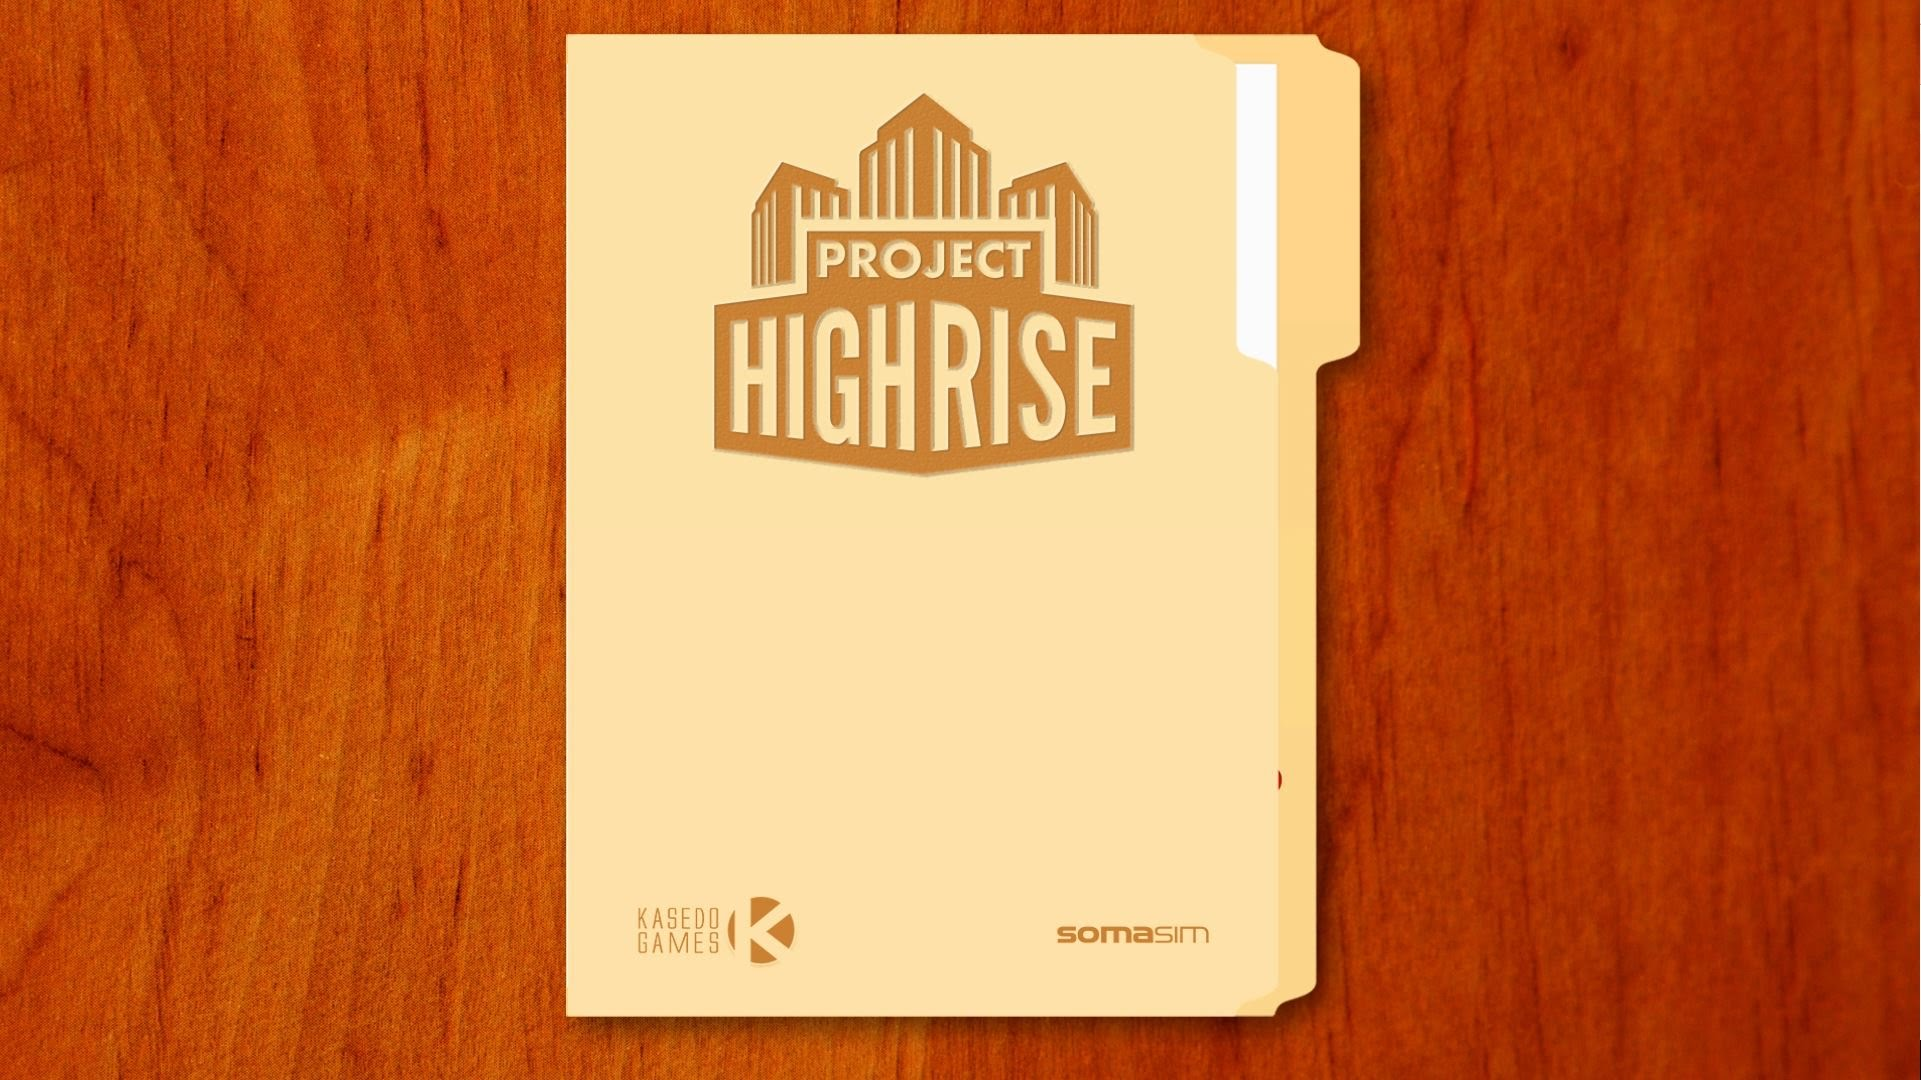 Project Highrise | Gameplay Trailer